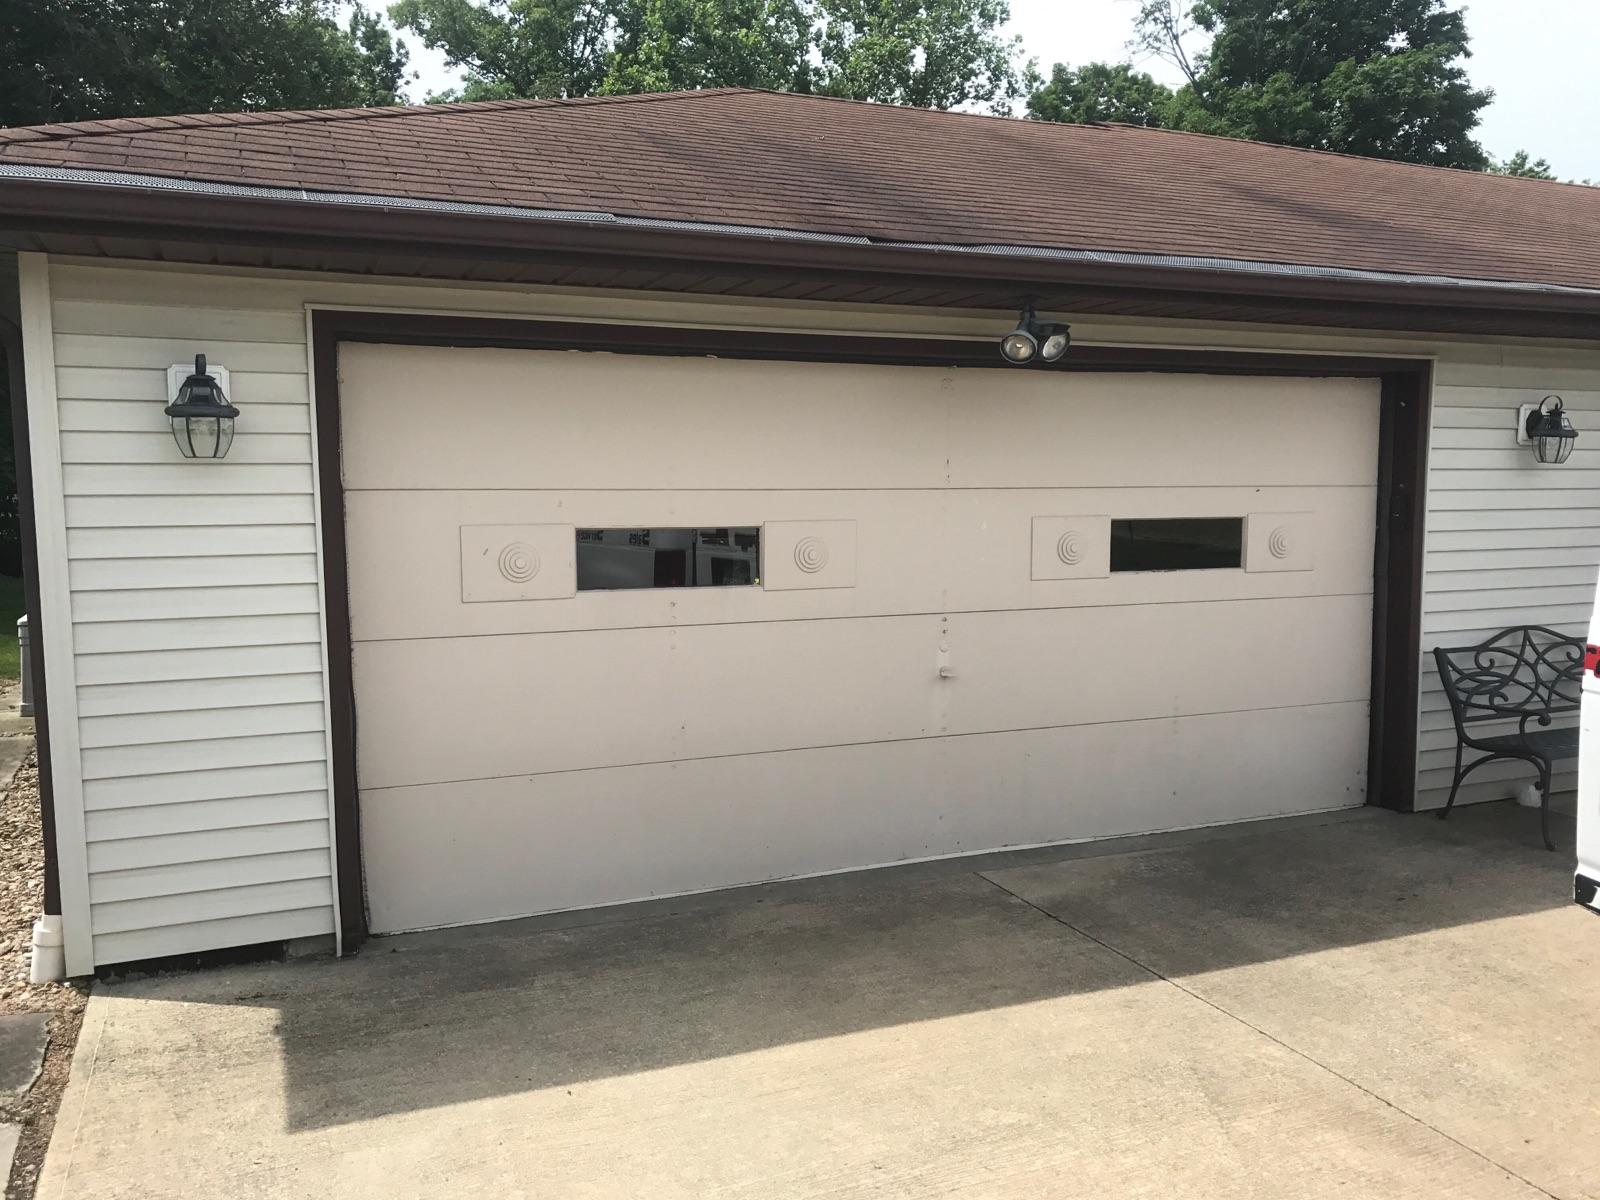 Replacement Garage door installation in Summit and Portage Counties